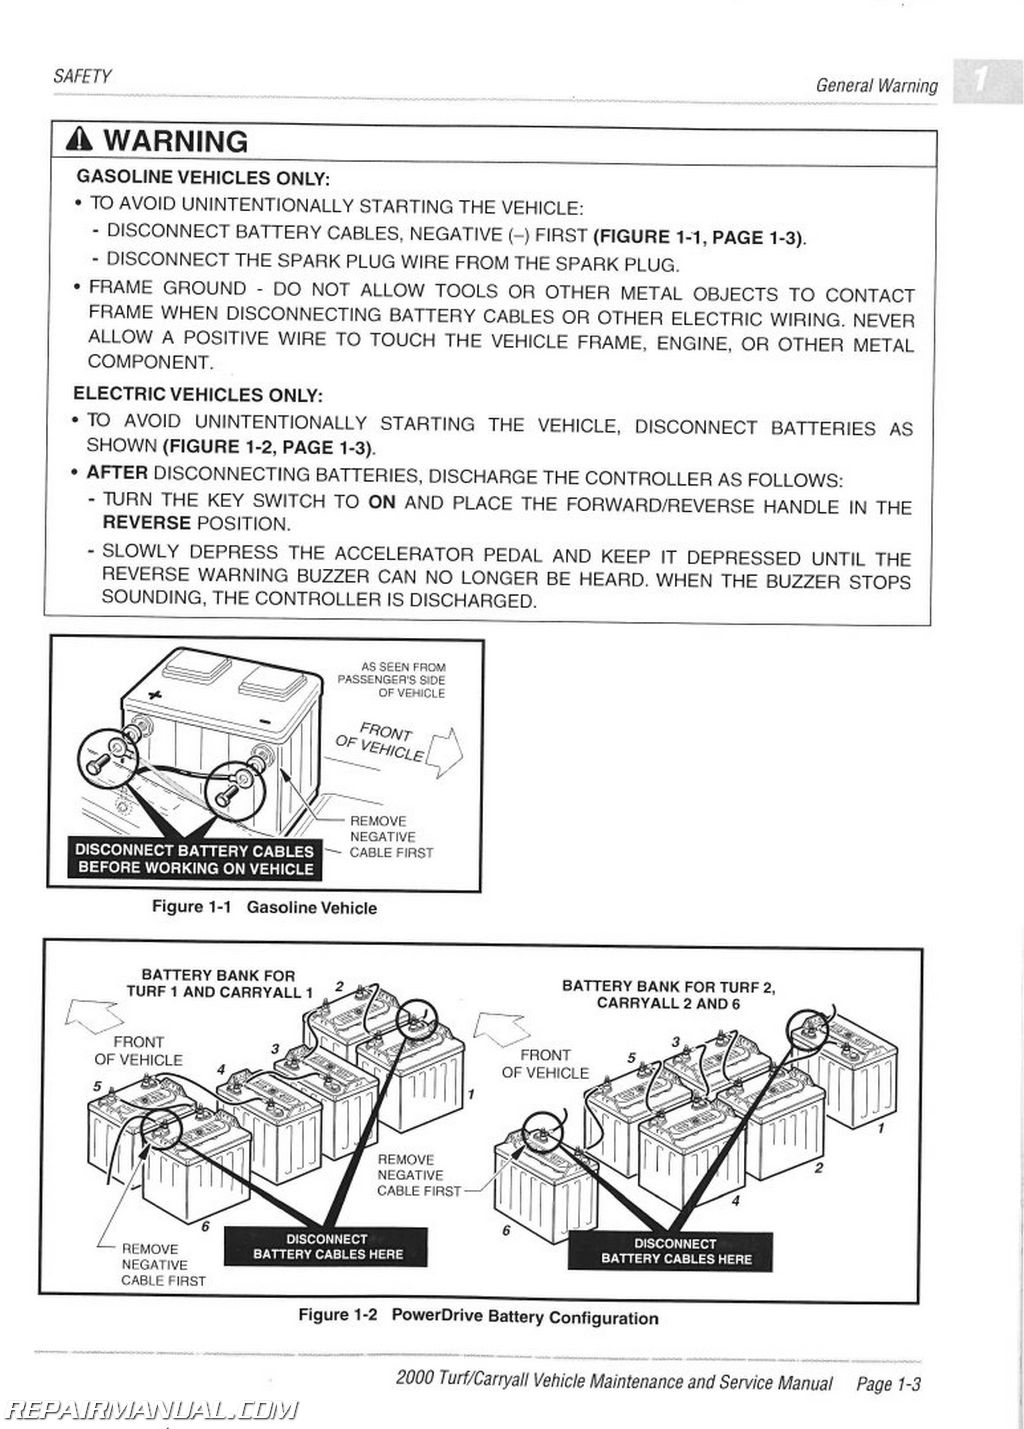 1999 Club Car Carry All 2 Plus Wiring Diagram Library Carryall